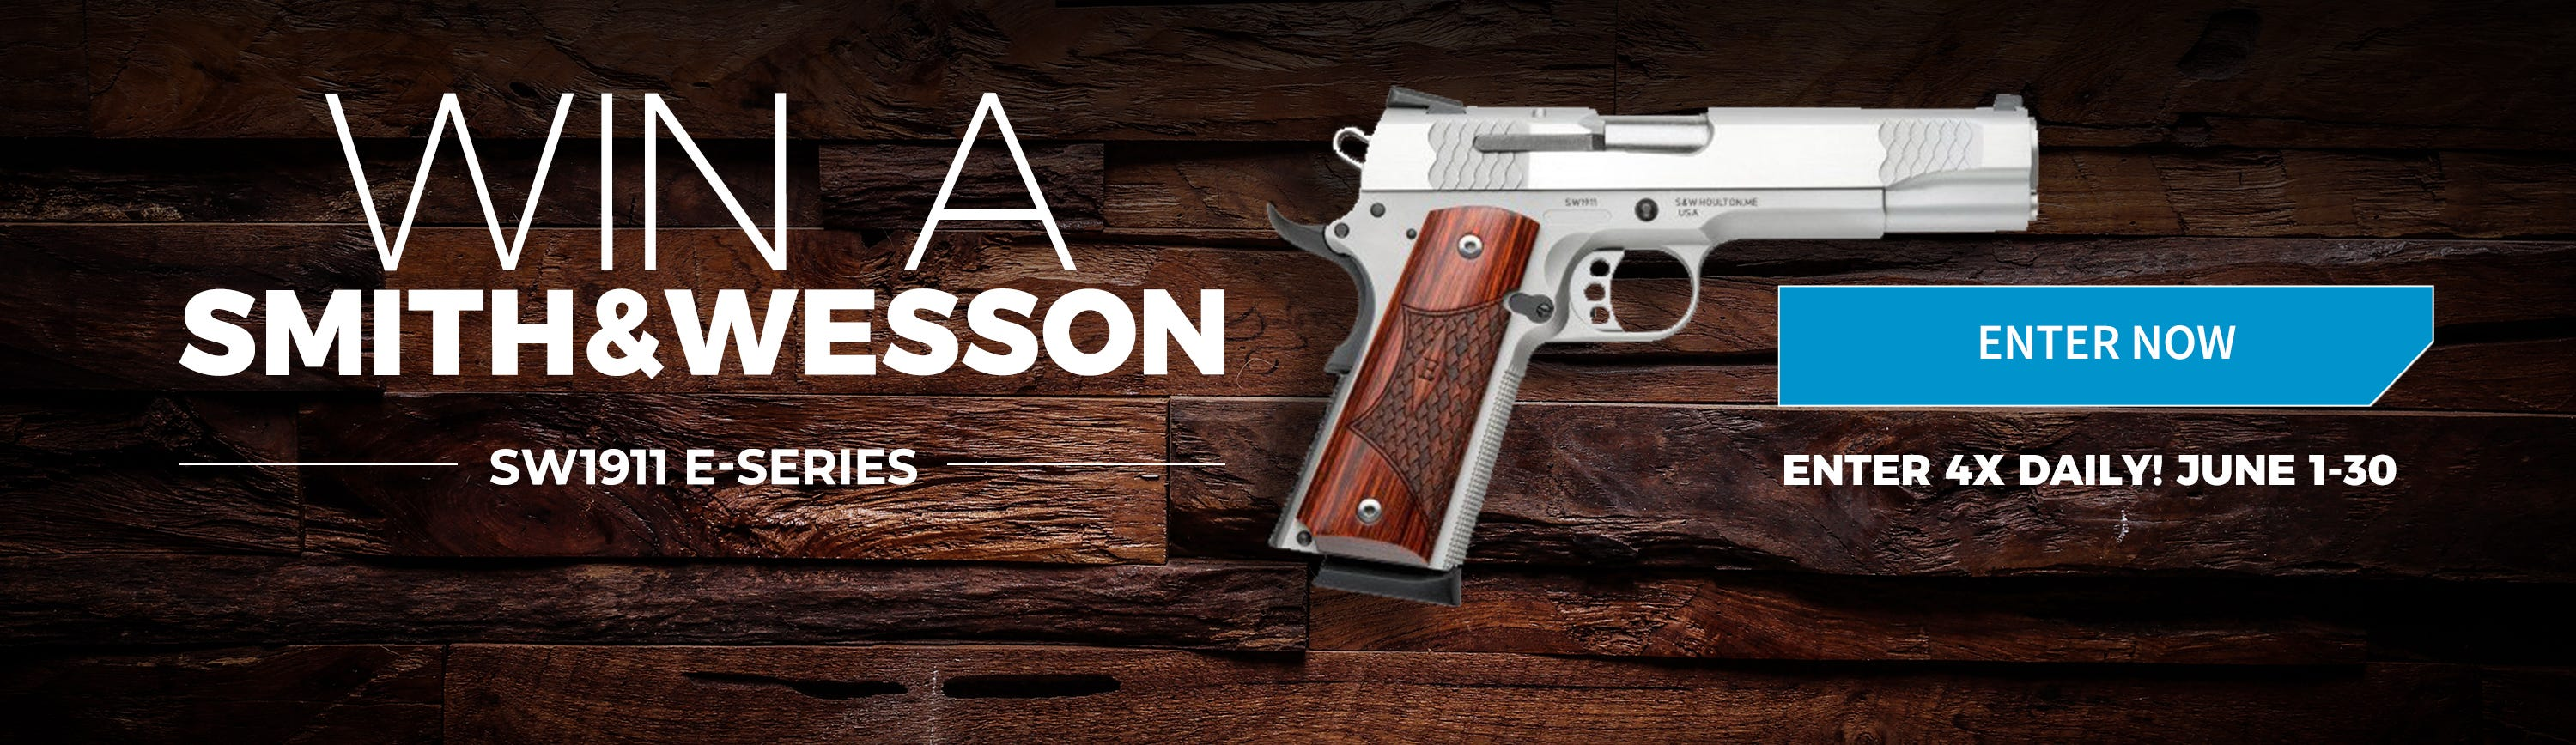 GrabAGun Monthly Giveaway - Win a Smith and Wesson 1911 E-Series Pistol